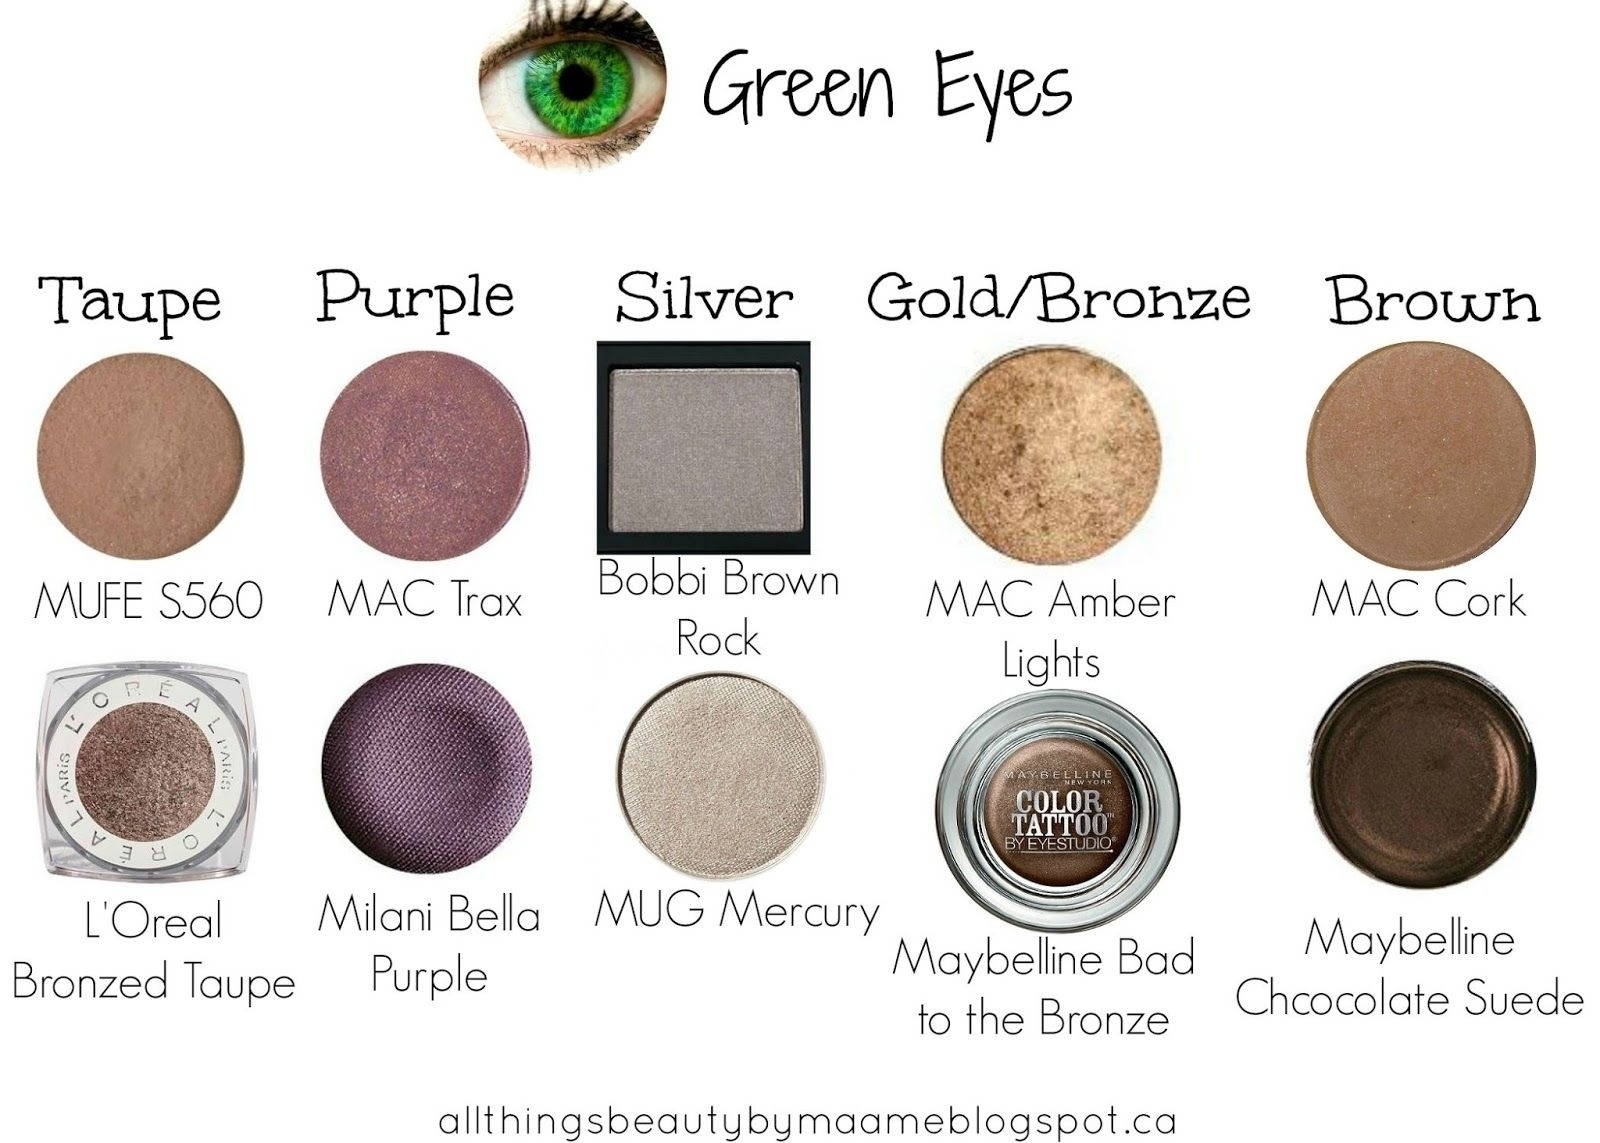 Best Mac Eyeshadows For Green Eyes – Wavy Haircut intended for Best Eyeshadow For Green Eyes Mac